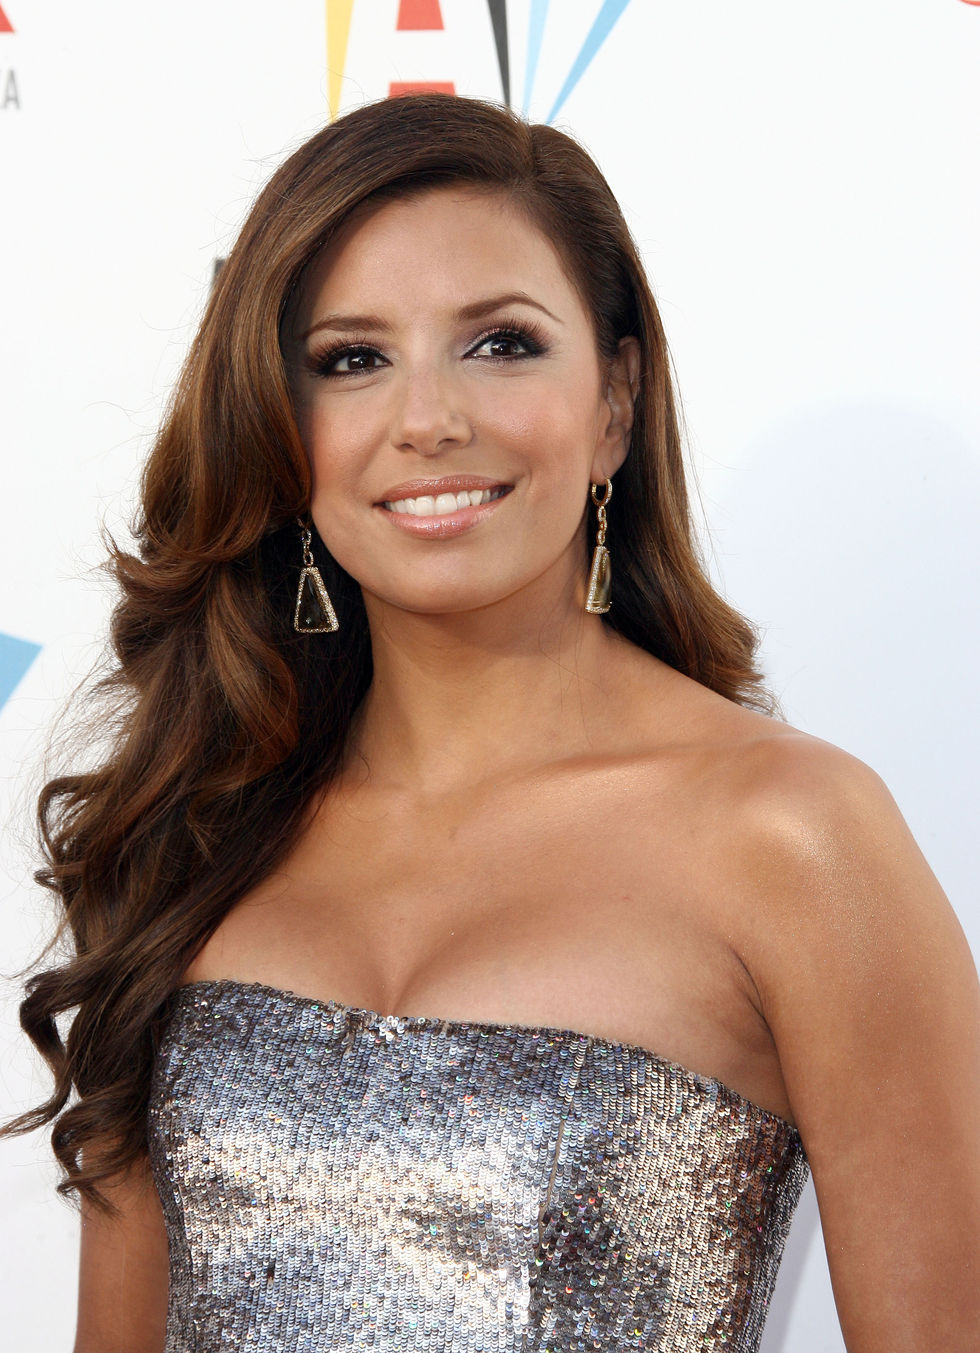 eva-longoria-2009-alma-awards-in-los-angeles-01